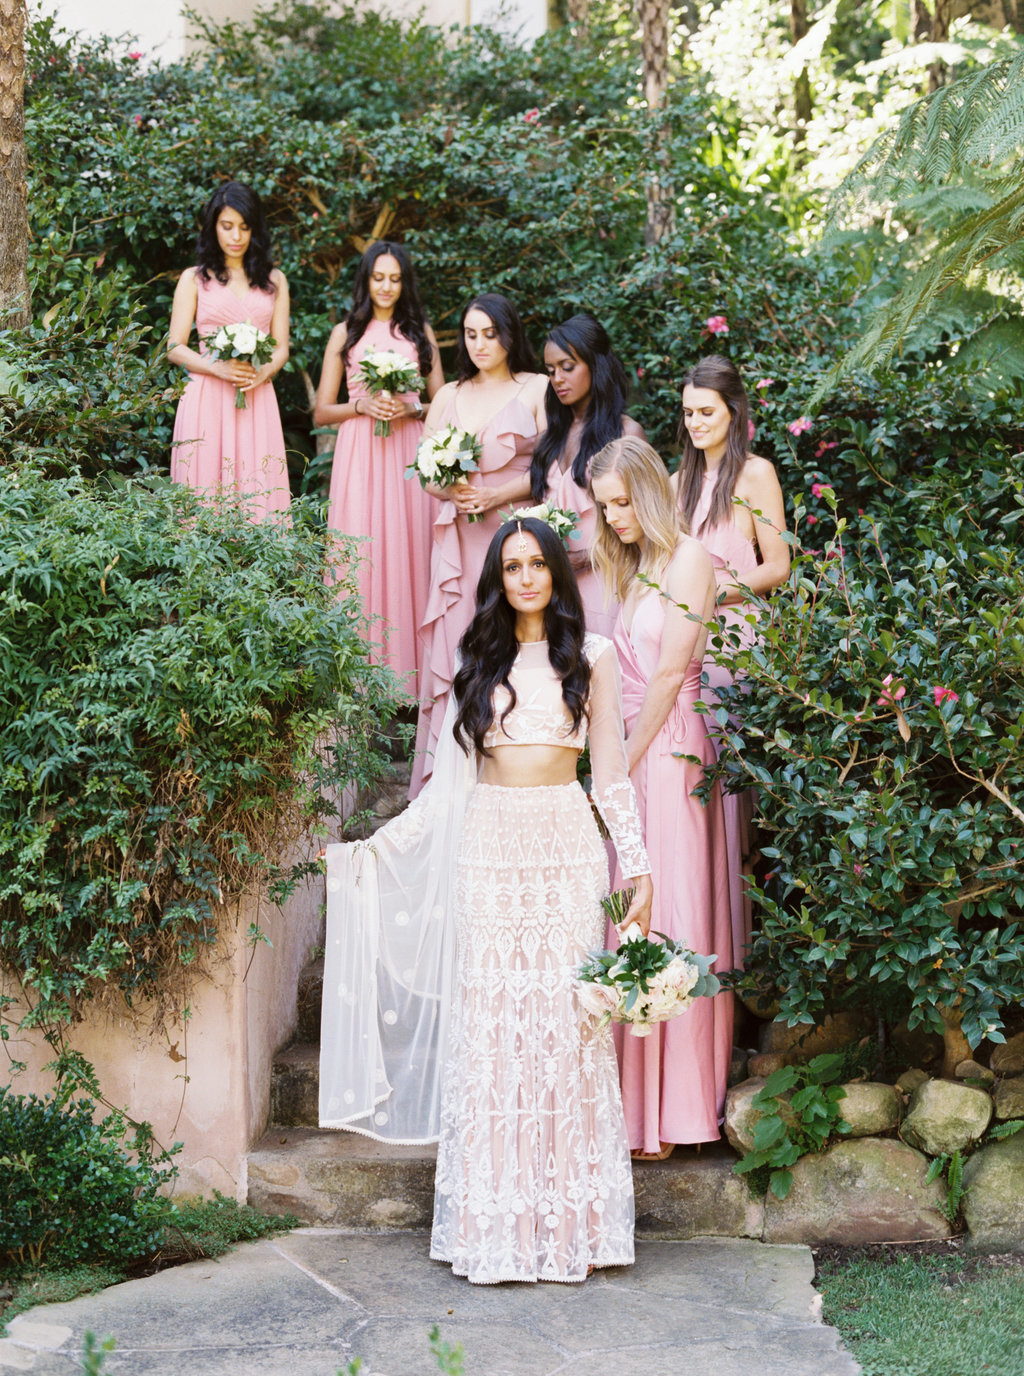 Bride in traditional white wedding saree and bridesmaids in mismatched pink dresses for wedding party photo at Butterfly Lane Estate